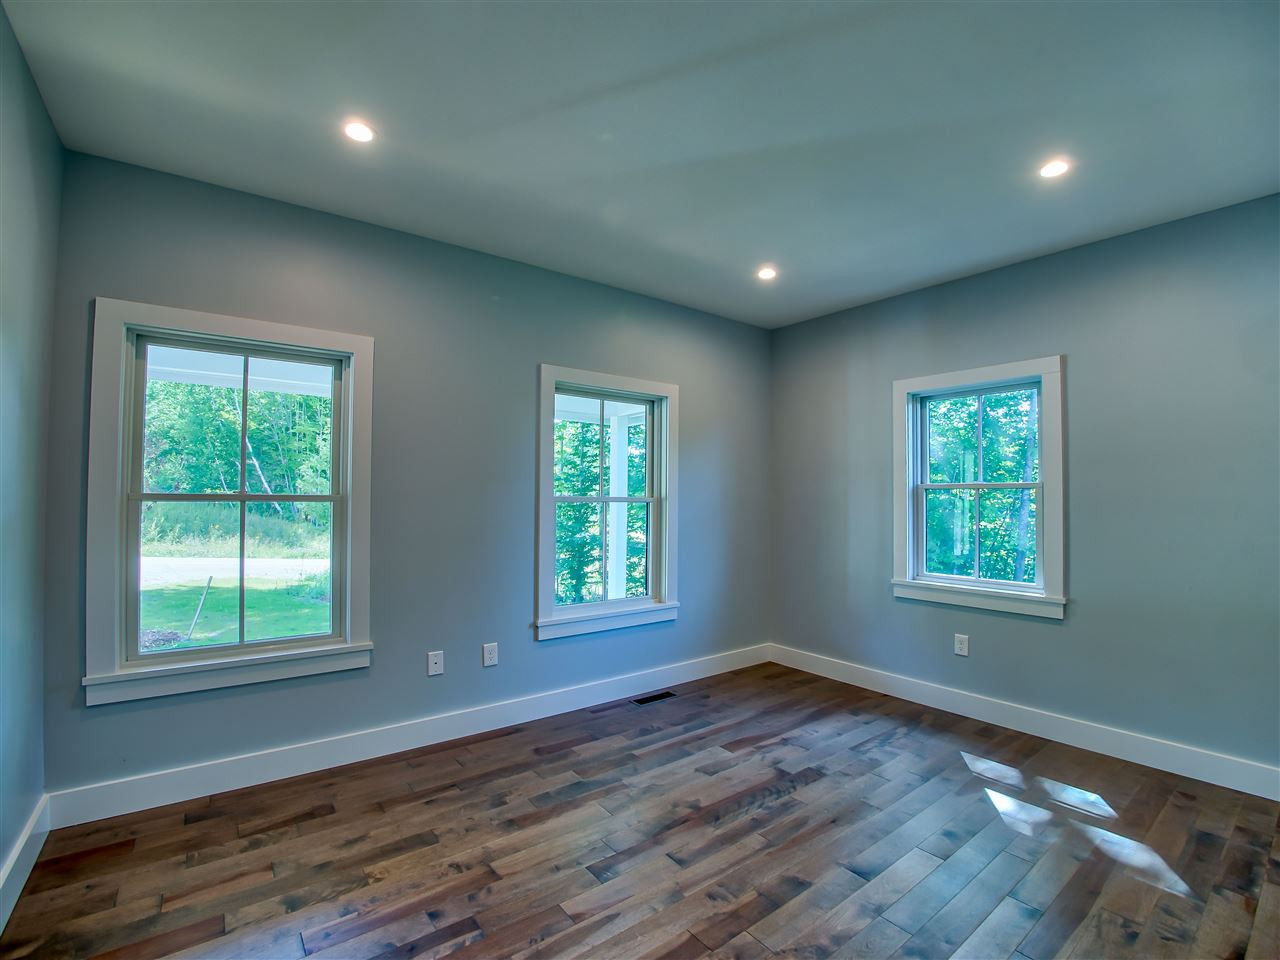 crescent hardwood flooring new orleans of stowe homes for sale search for your dream home in ma ct nh with vmont resd 4705933 6